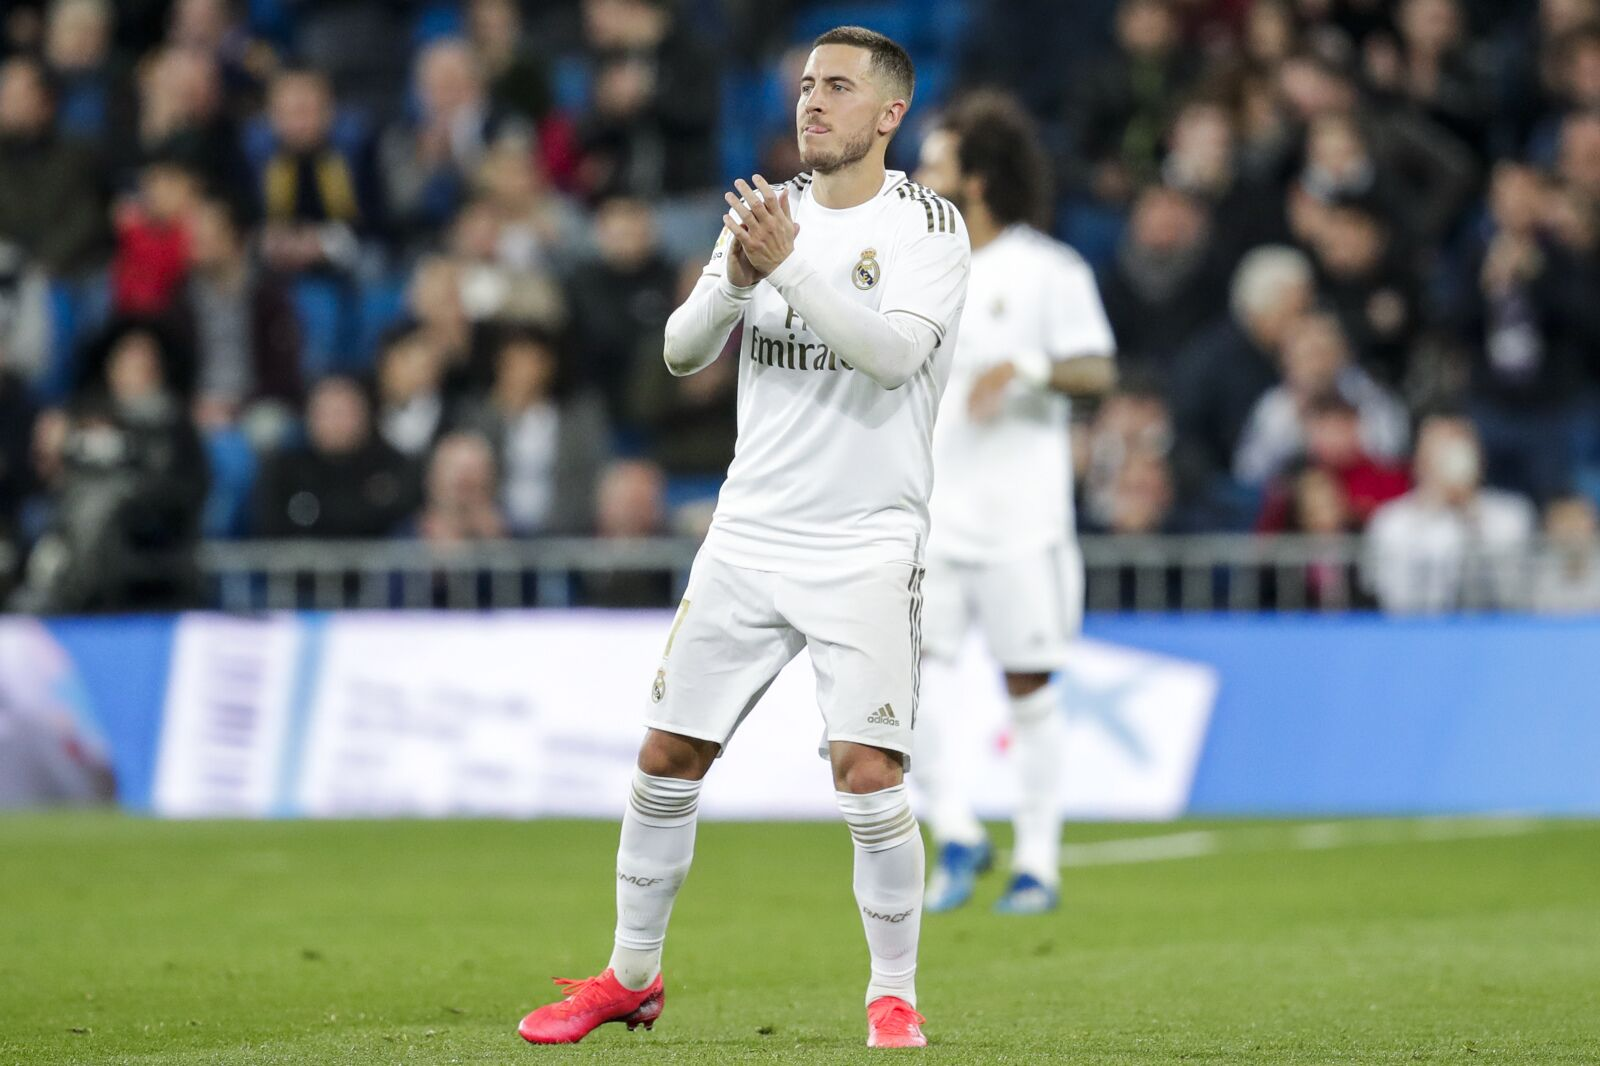 Real Madrid: 3 bright spots from 2-2 draw with Celta Vigo